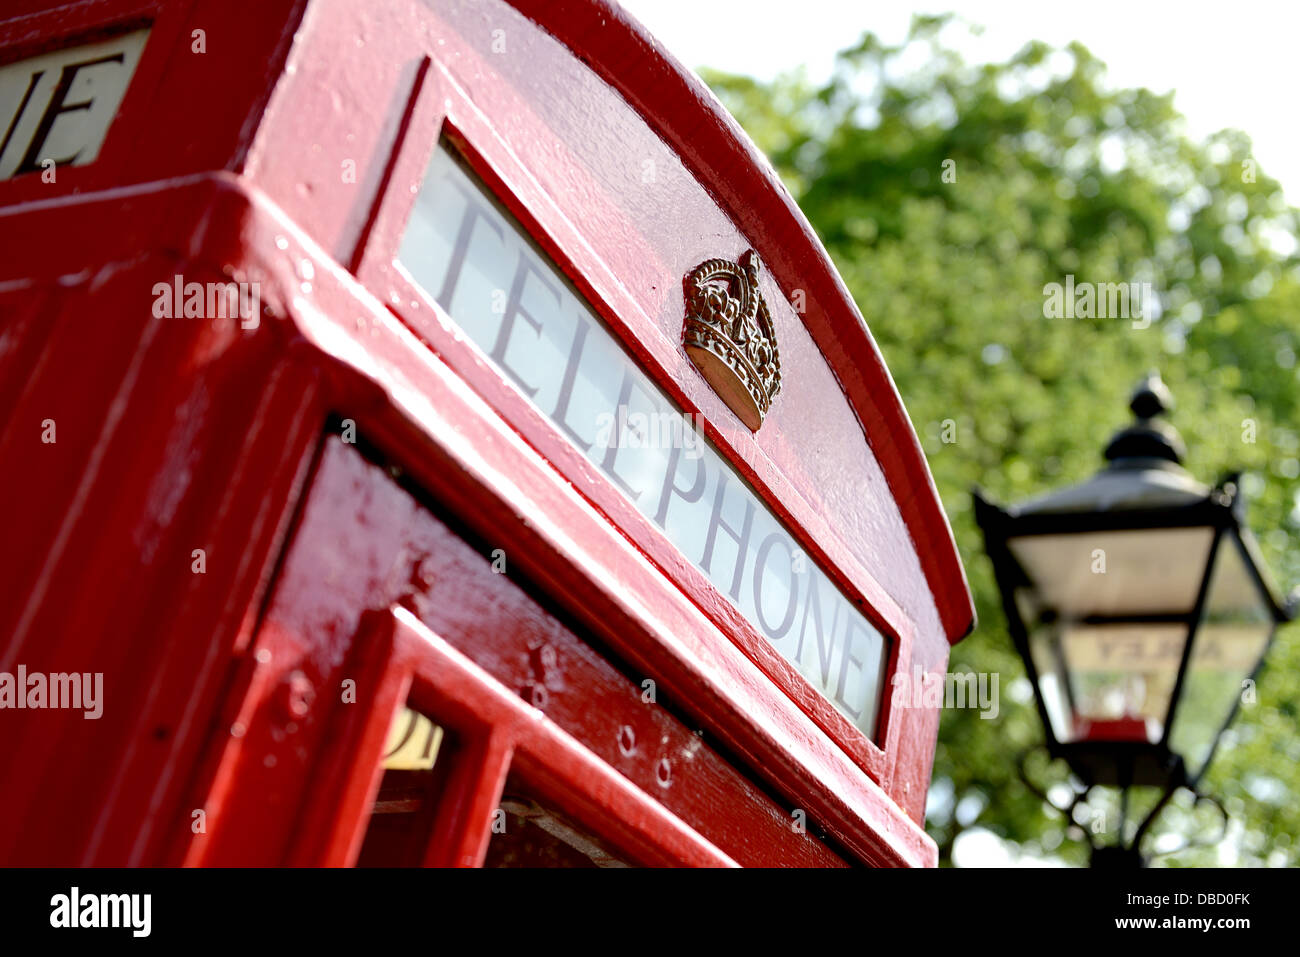 red telephone box with old fashioned london street light in soft focus - Stock Image